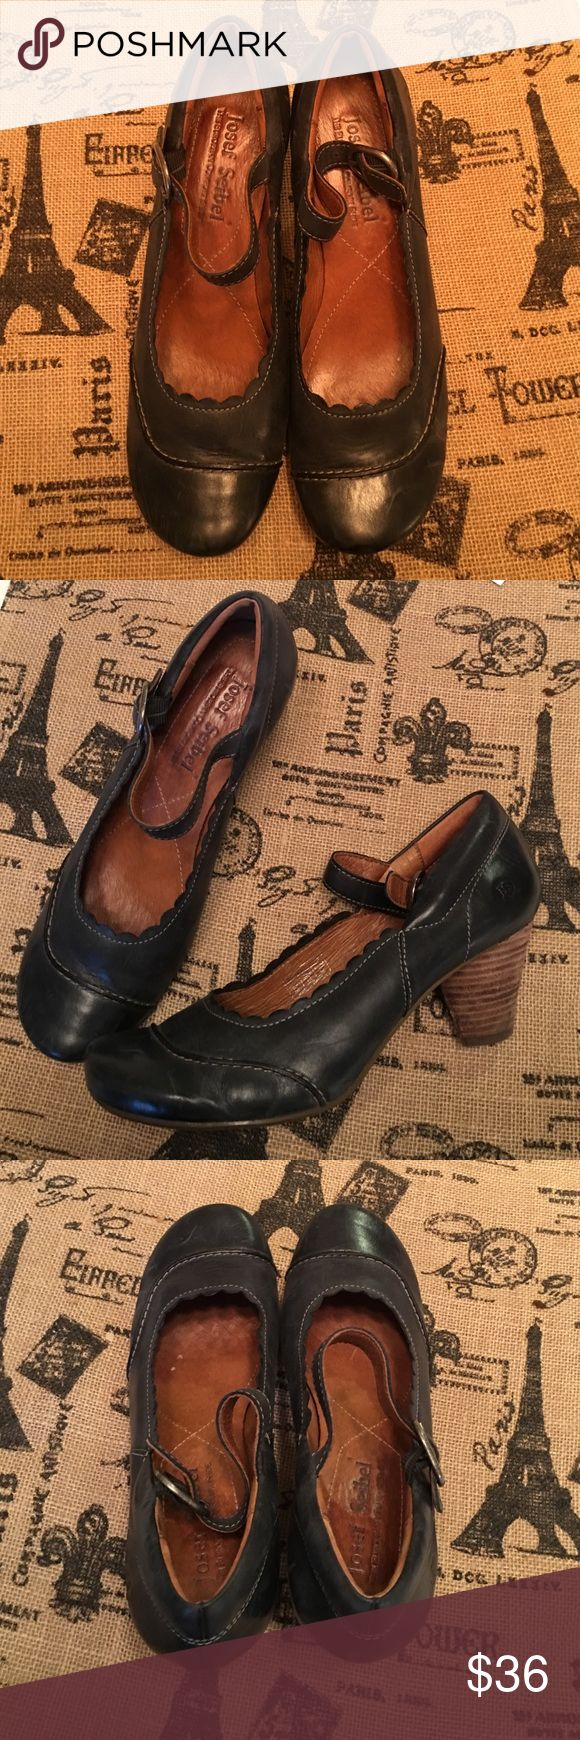 Navy Josef Seibel Pumps Size 9 (39) Navy Blue Leather Shoes Size 9 (39). I think they would fit 8.5 well. Rarely worn. Josef Seibel Shoes